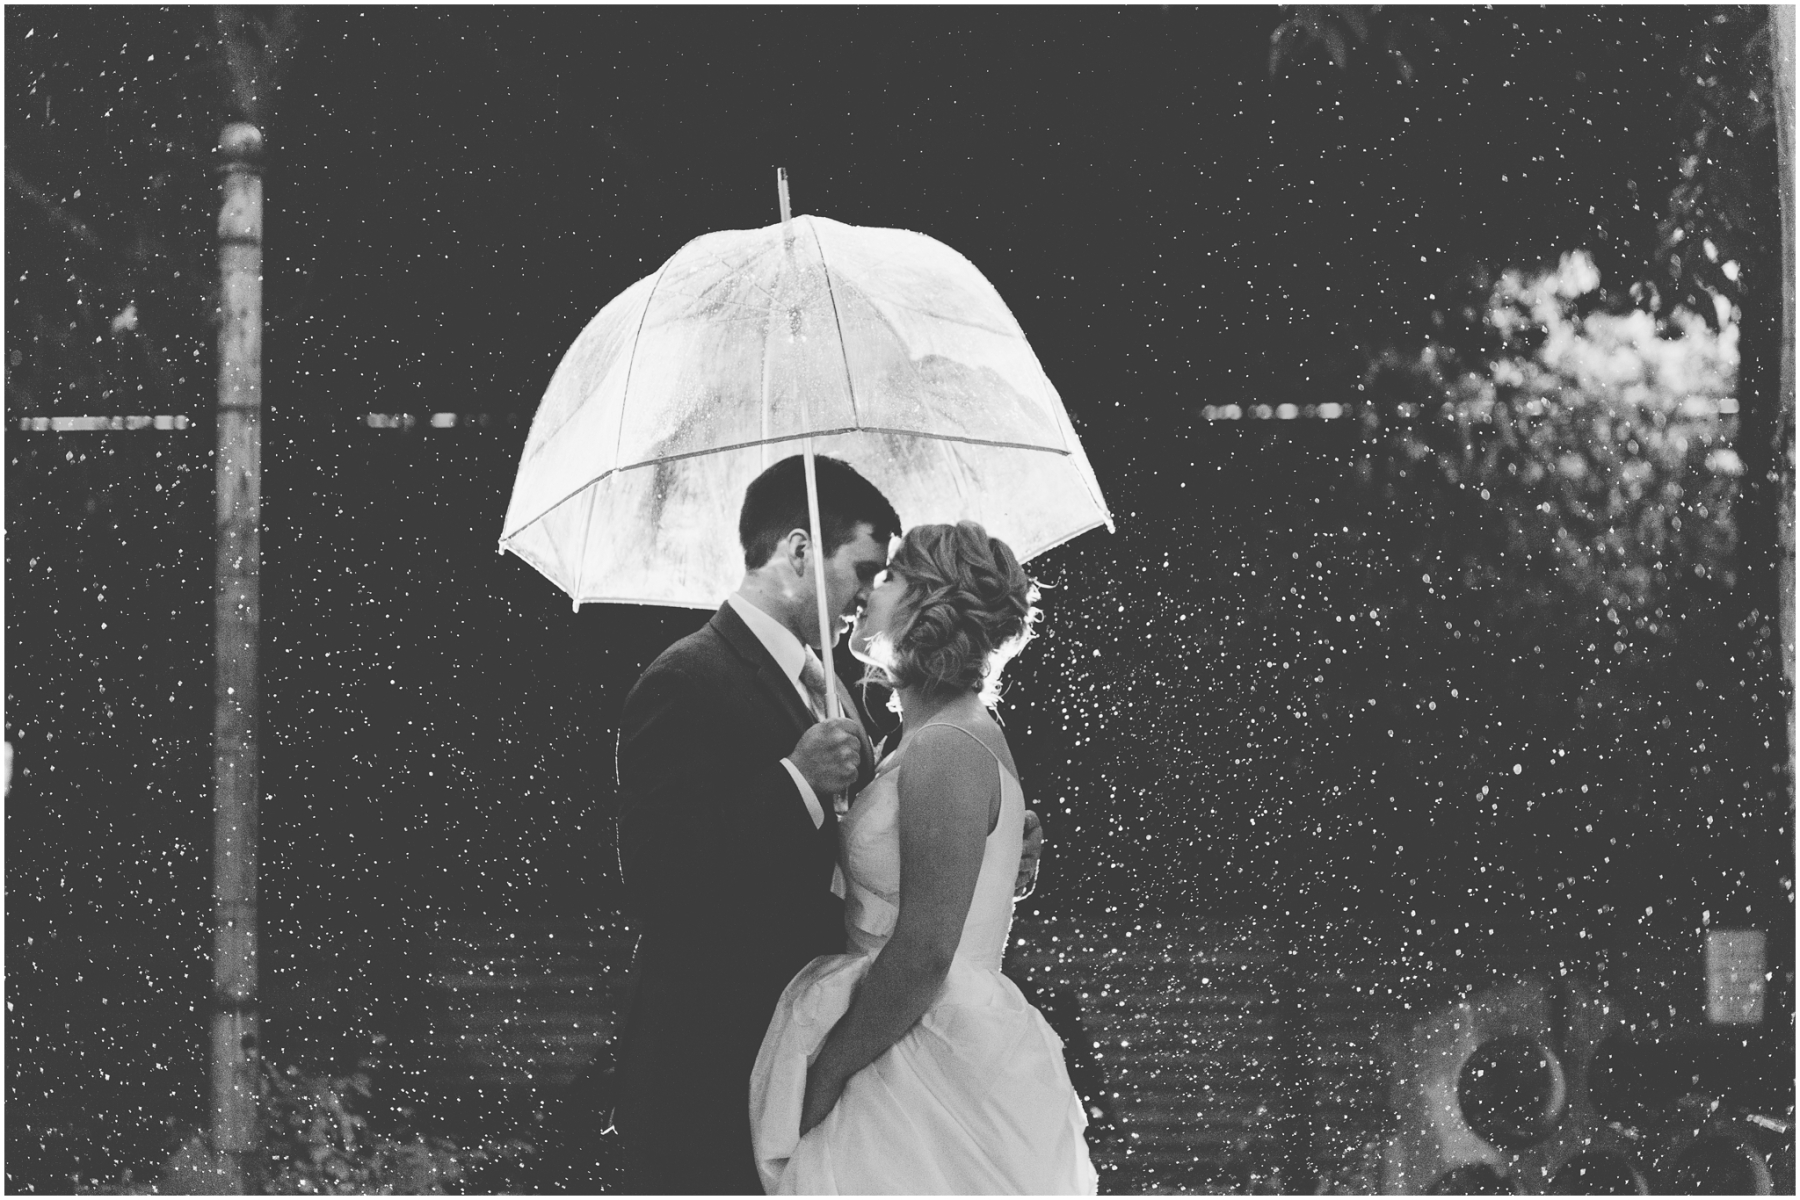 Bride and groom photo in the rain at the Fremont Foundry in Seattle. Image captured by Ardita Kola Photography.